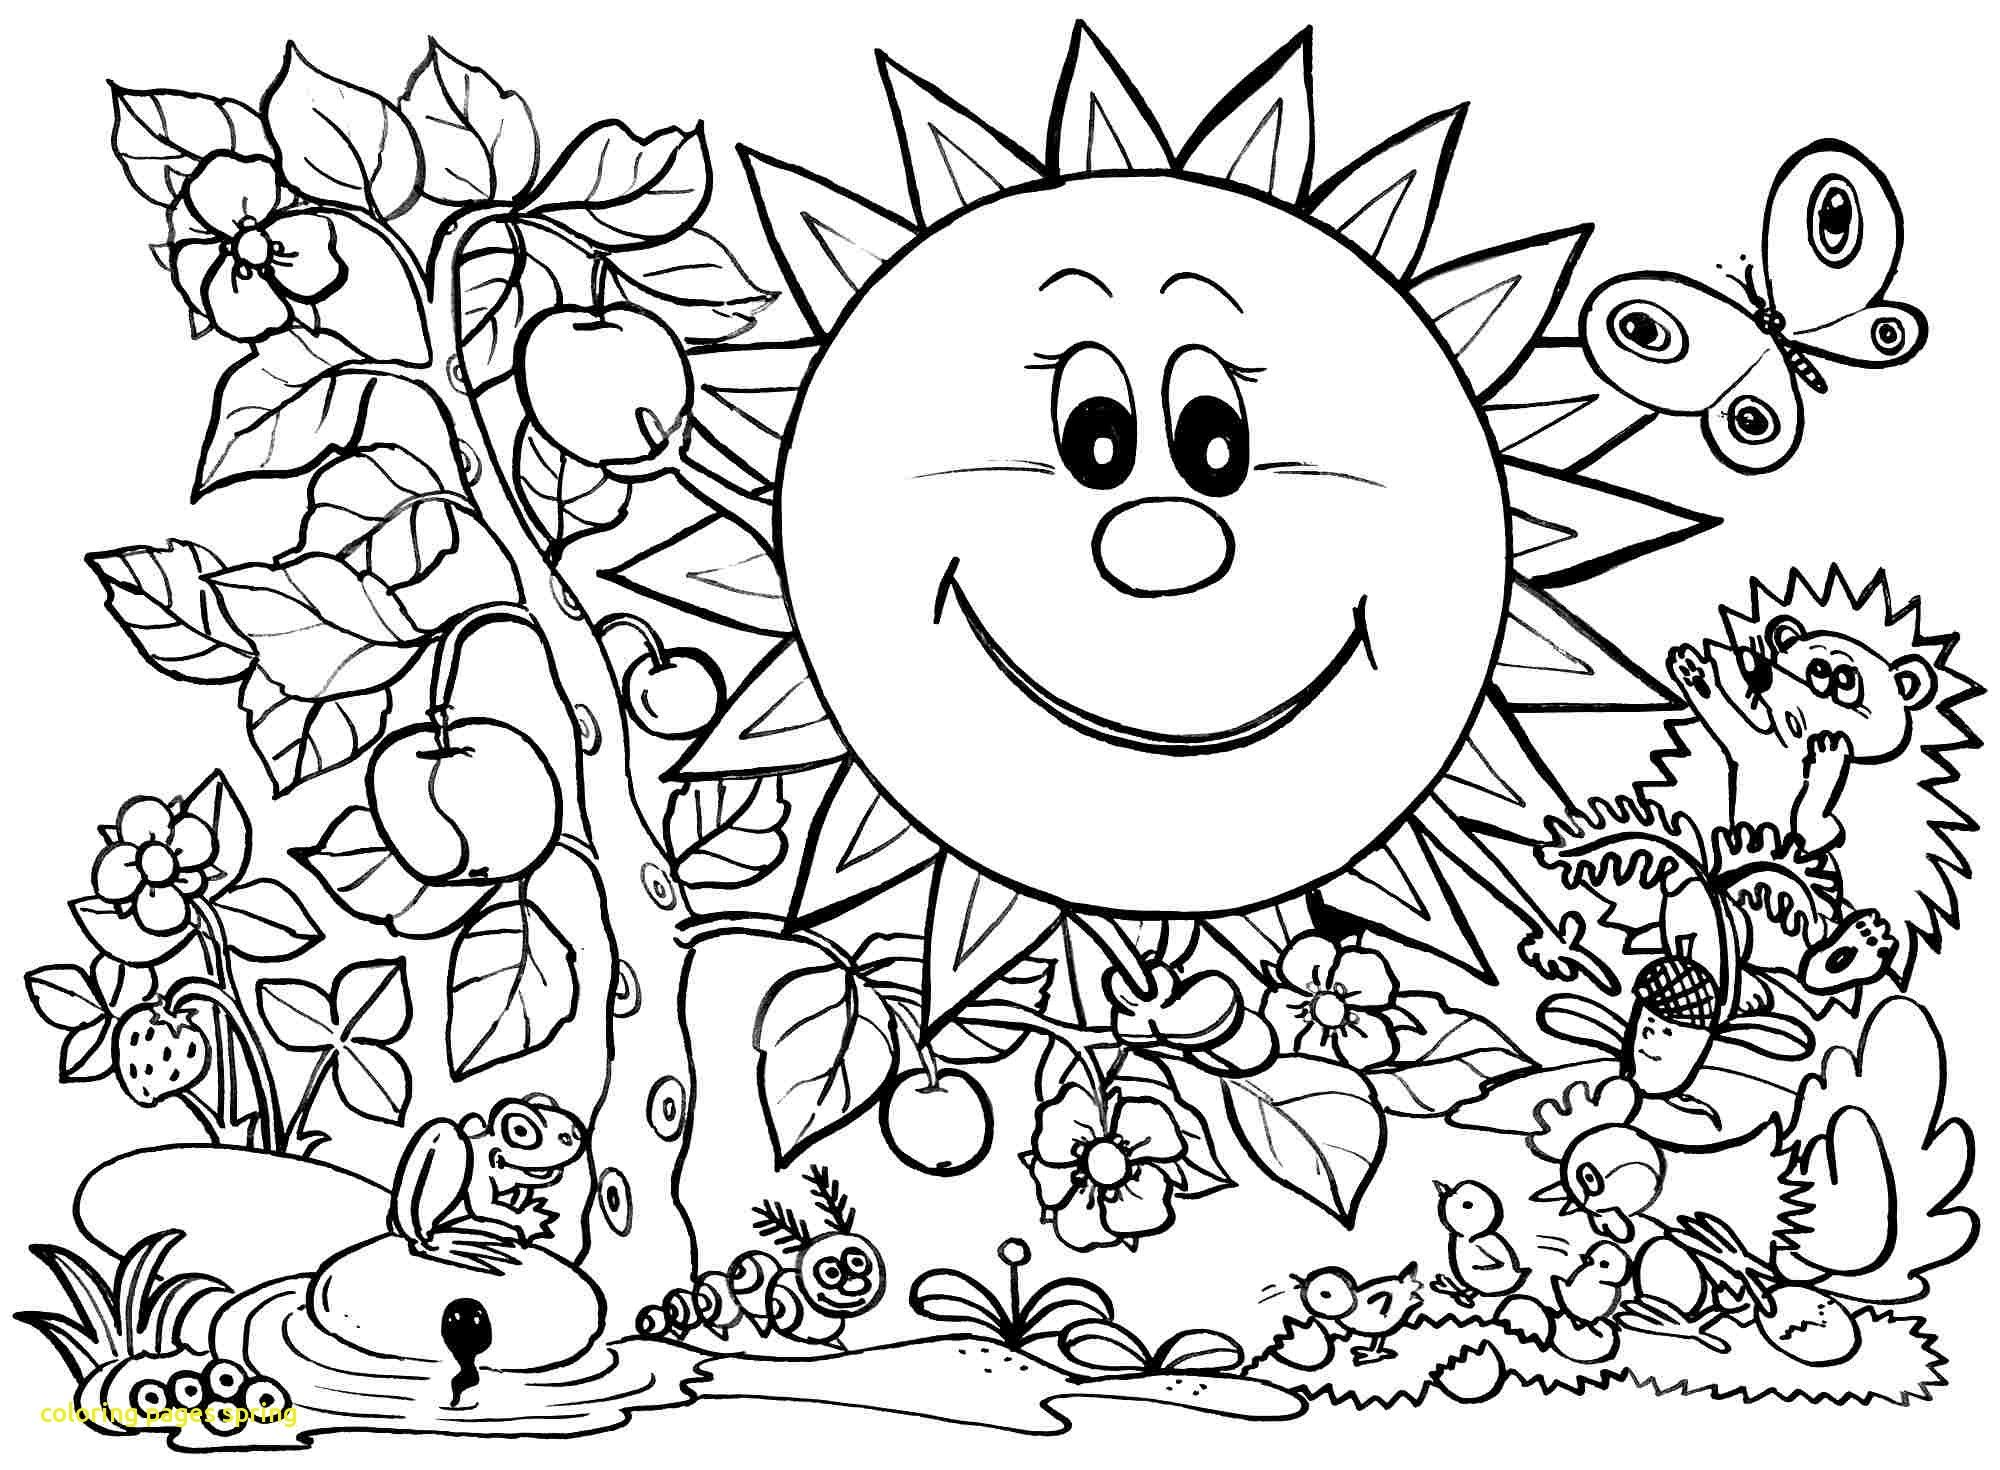 Live Draw And Enjoy On Getdrawings Com Get Free Drawings Vector Graphics And How To Draw Spring Coloring Pages Spring Coloring Sheets Summer Coloring Pages